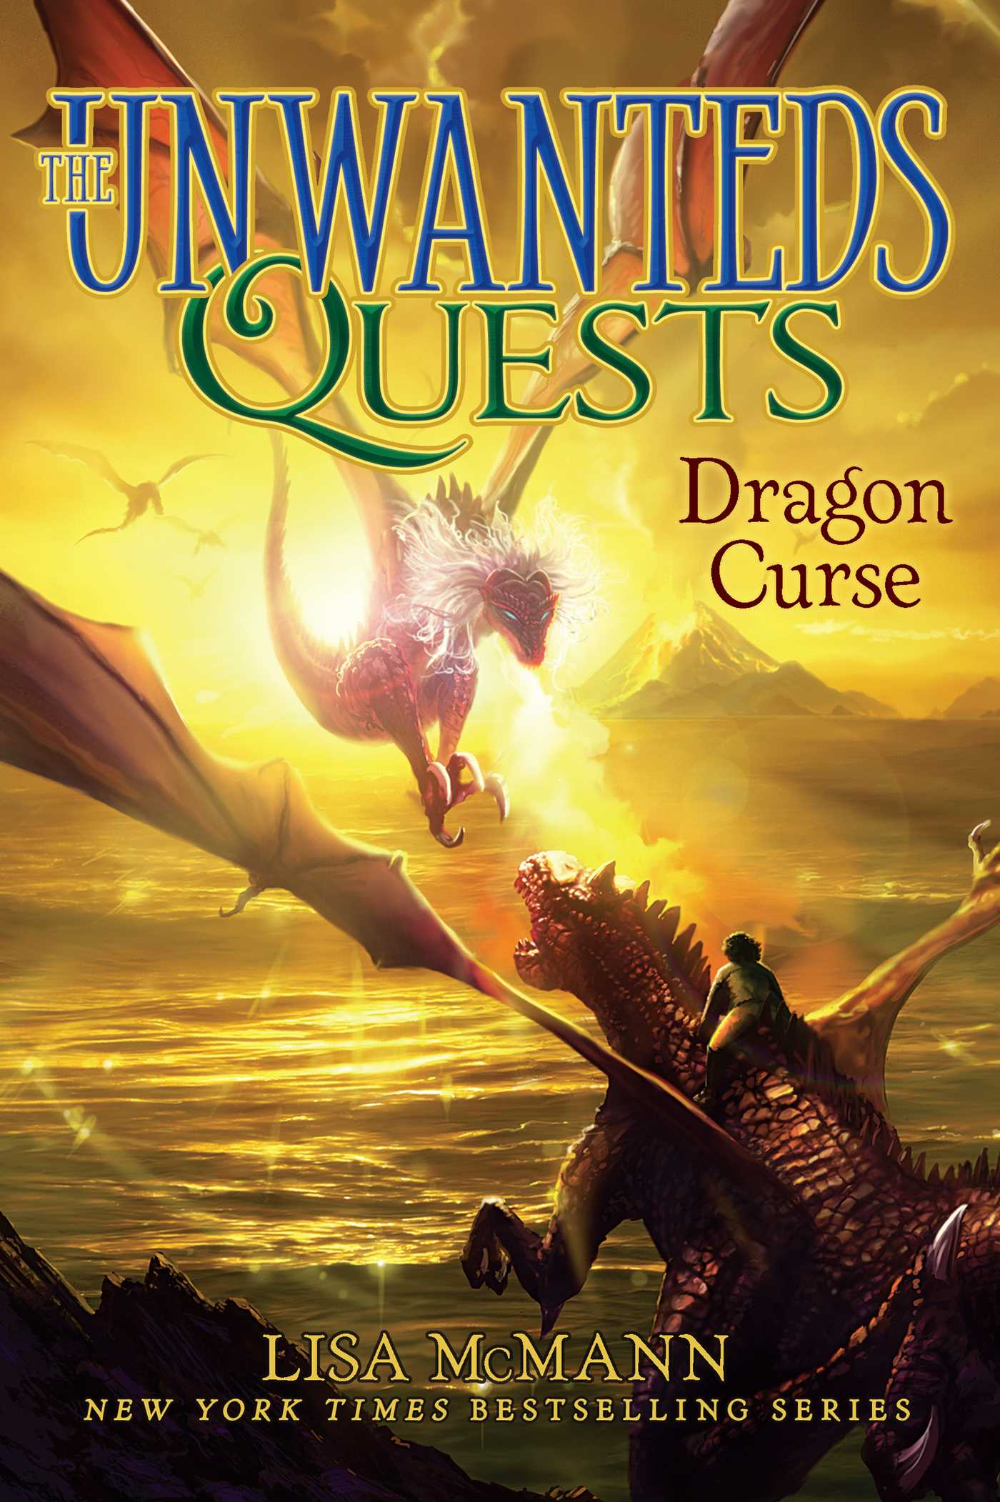 Dragon Curse The Unwanteds Quests 4 By Lisa Mcmann Goodreads Download Books Ebook Free Books Download